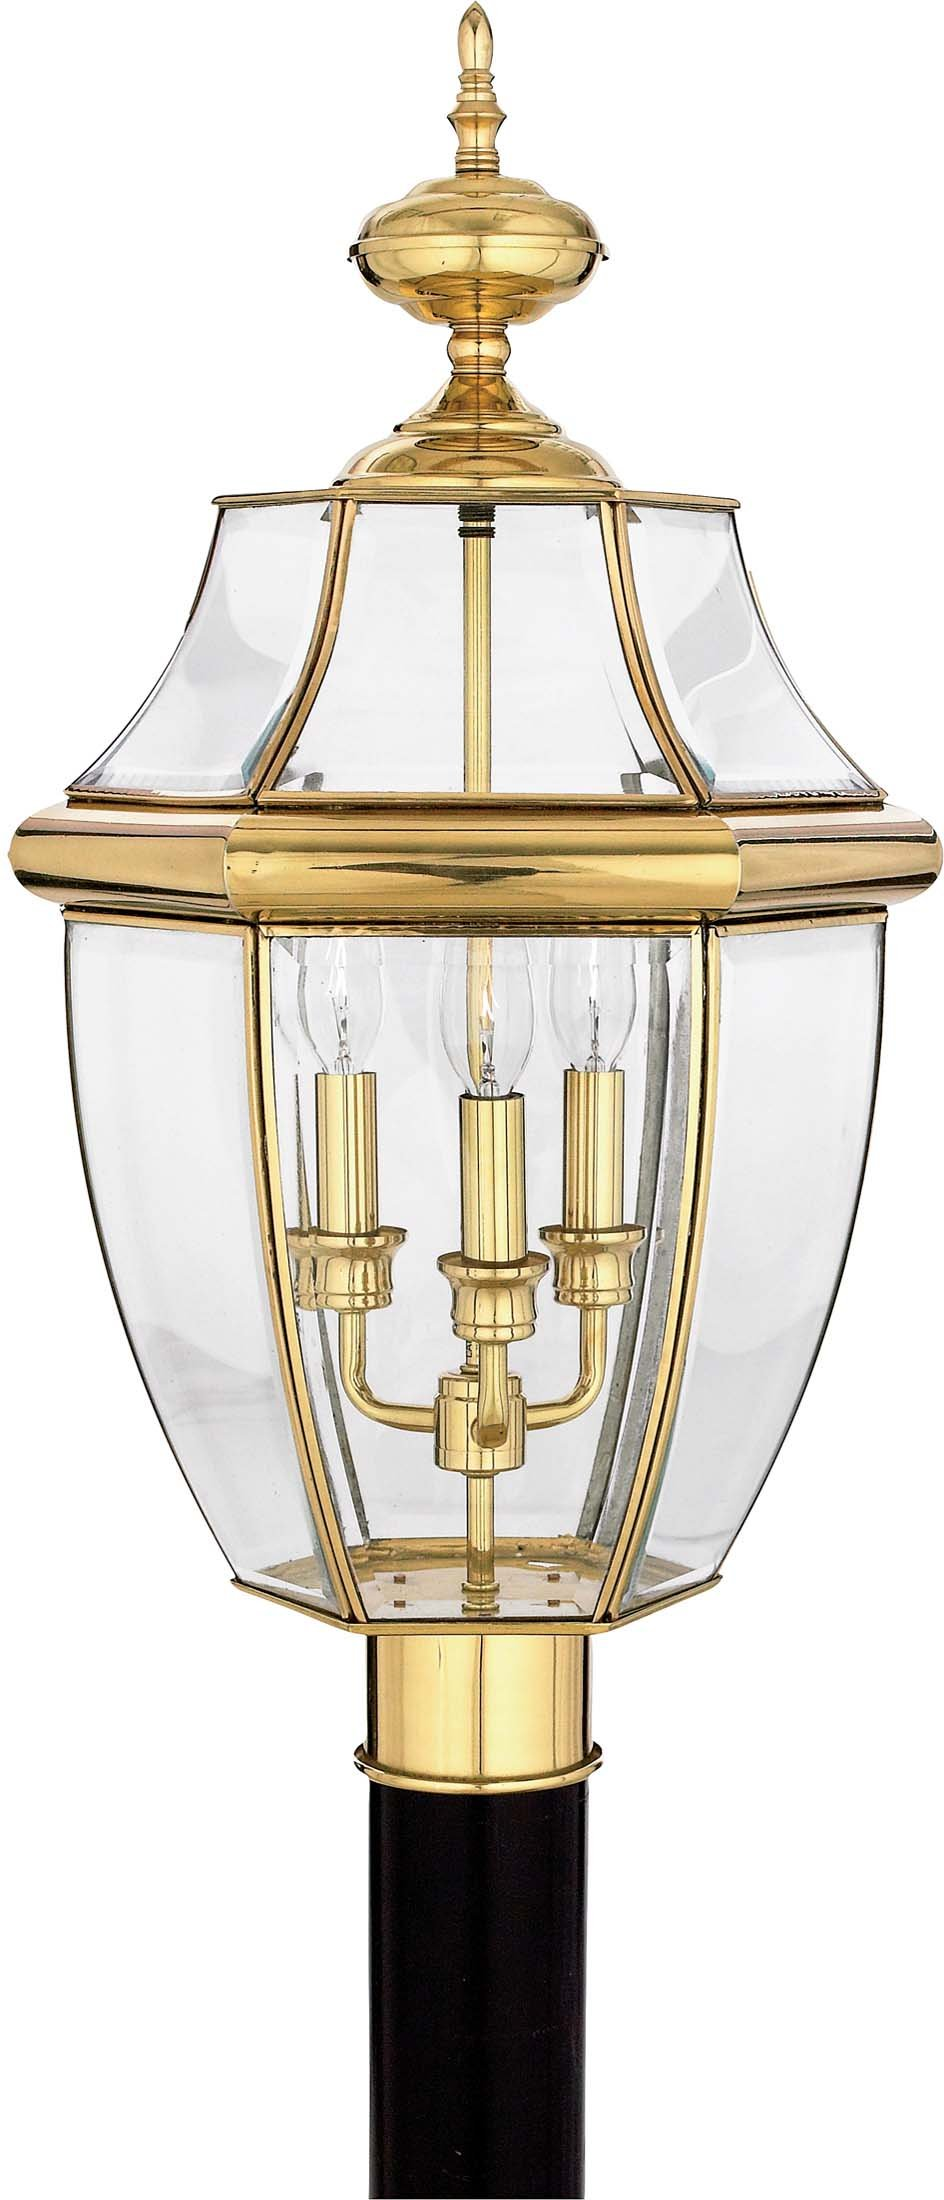 Quoizel NY9043B Newbury 3-Light Outdoor Post Lantern, Polished Brass by Quoizel